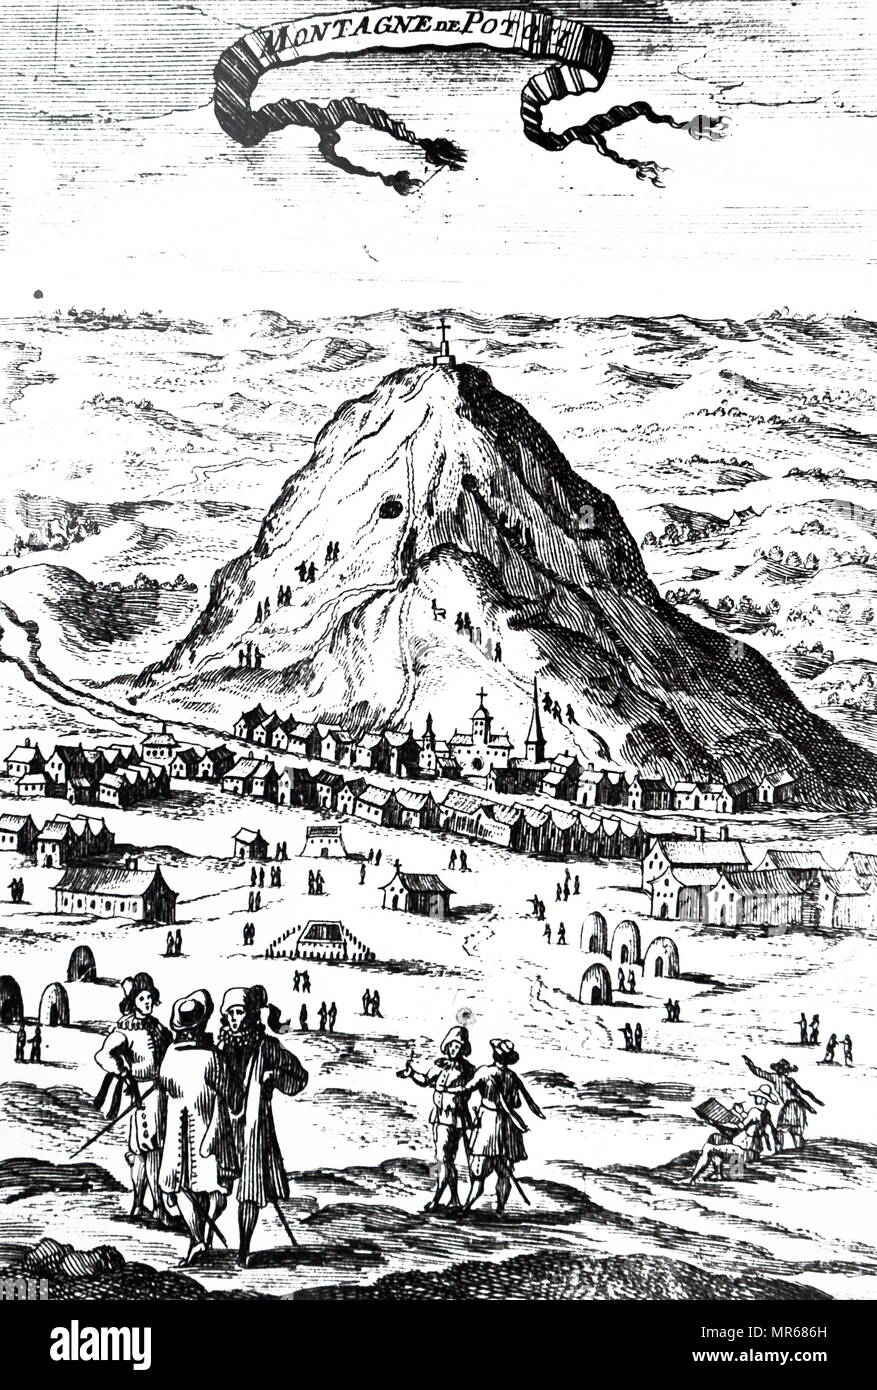 Engraving depicting a view of the Potosí mountain range in Bolivia, situated east and southeast of the city of Potosí. Dated 17th century - Stock Image